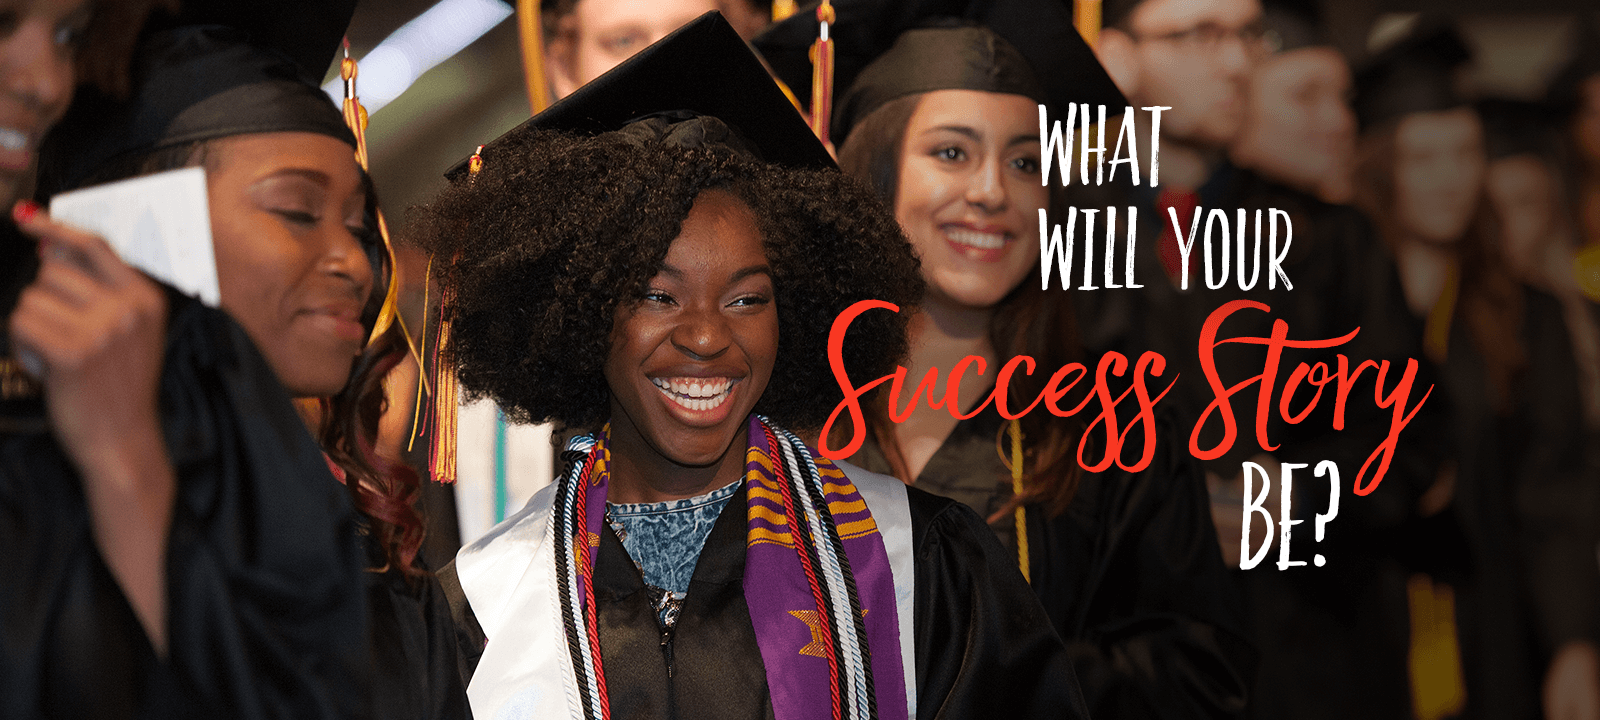 What will your success story be?